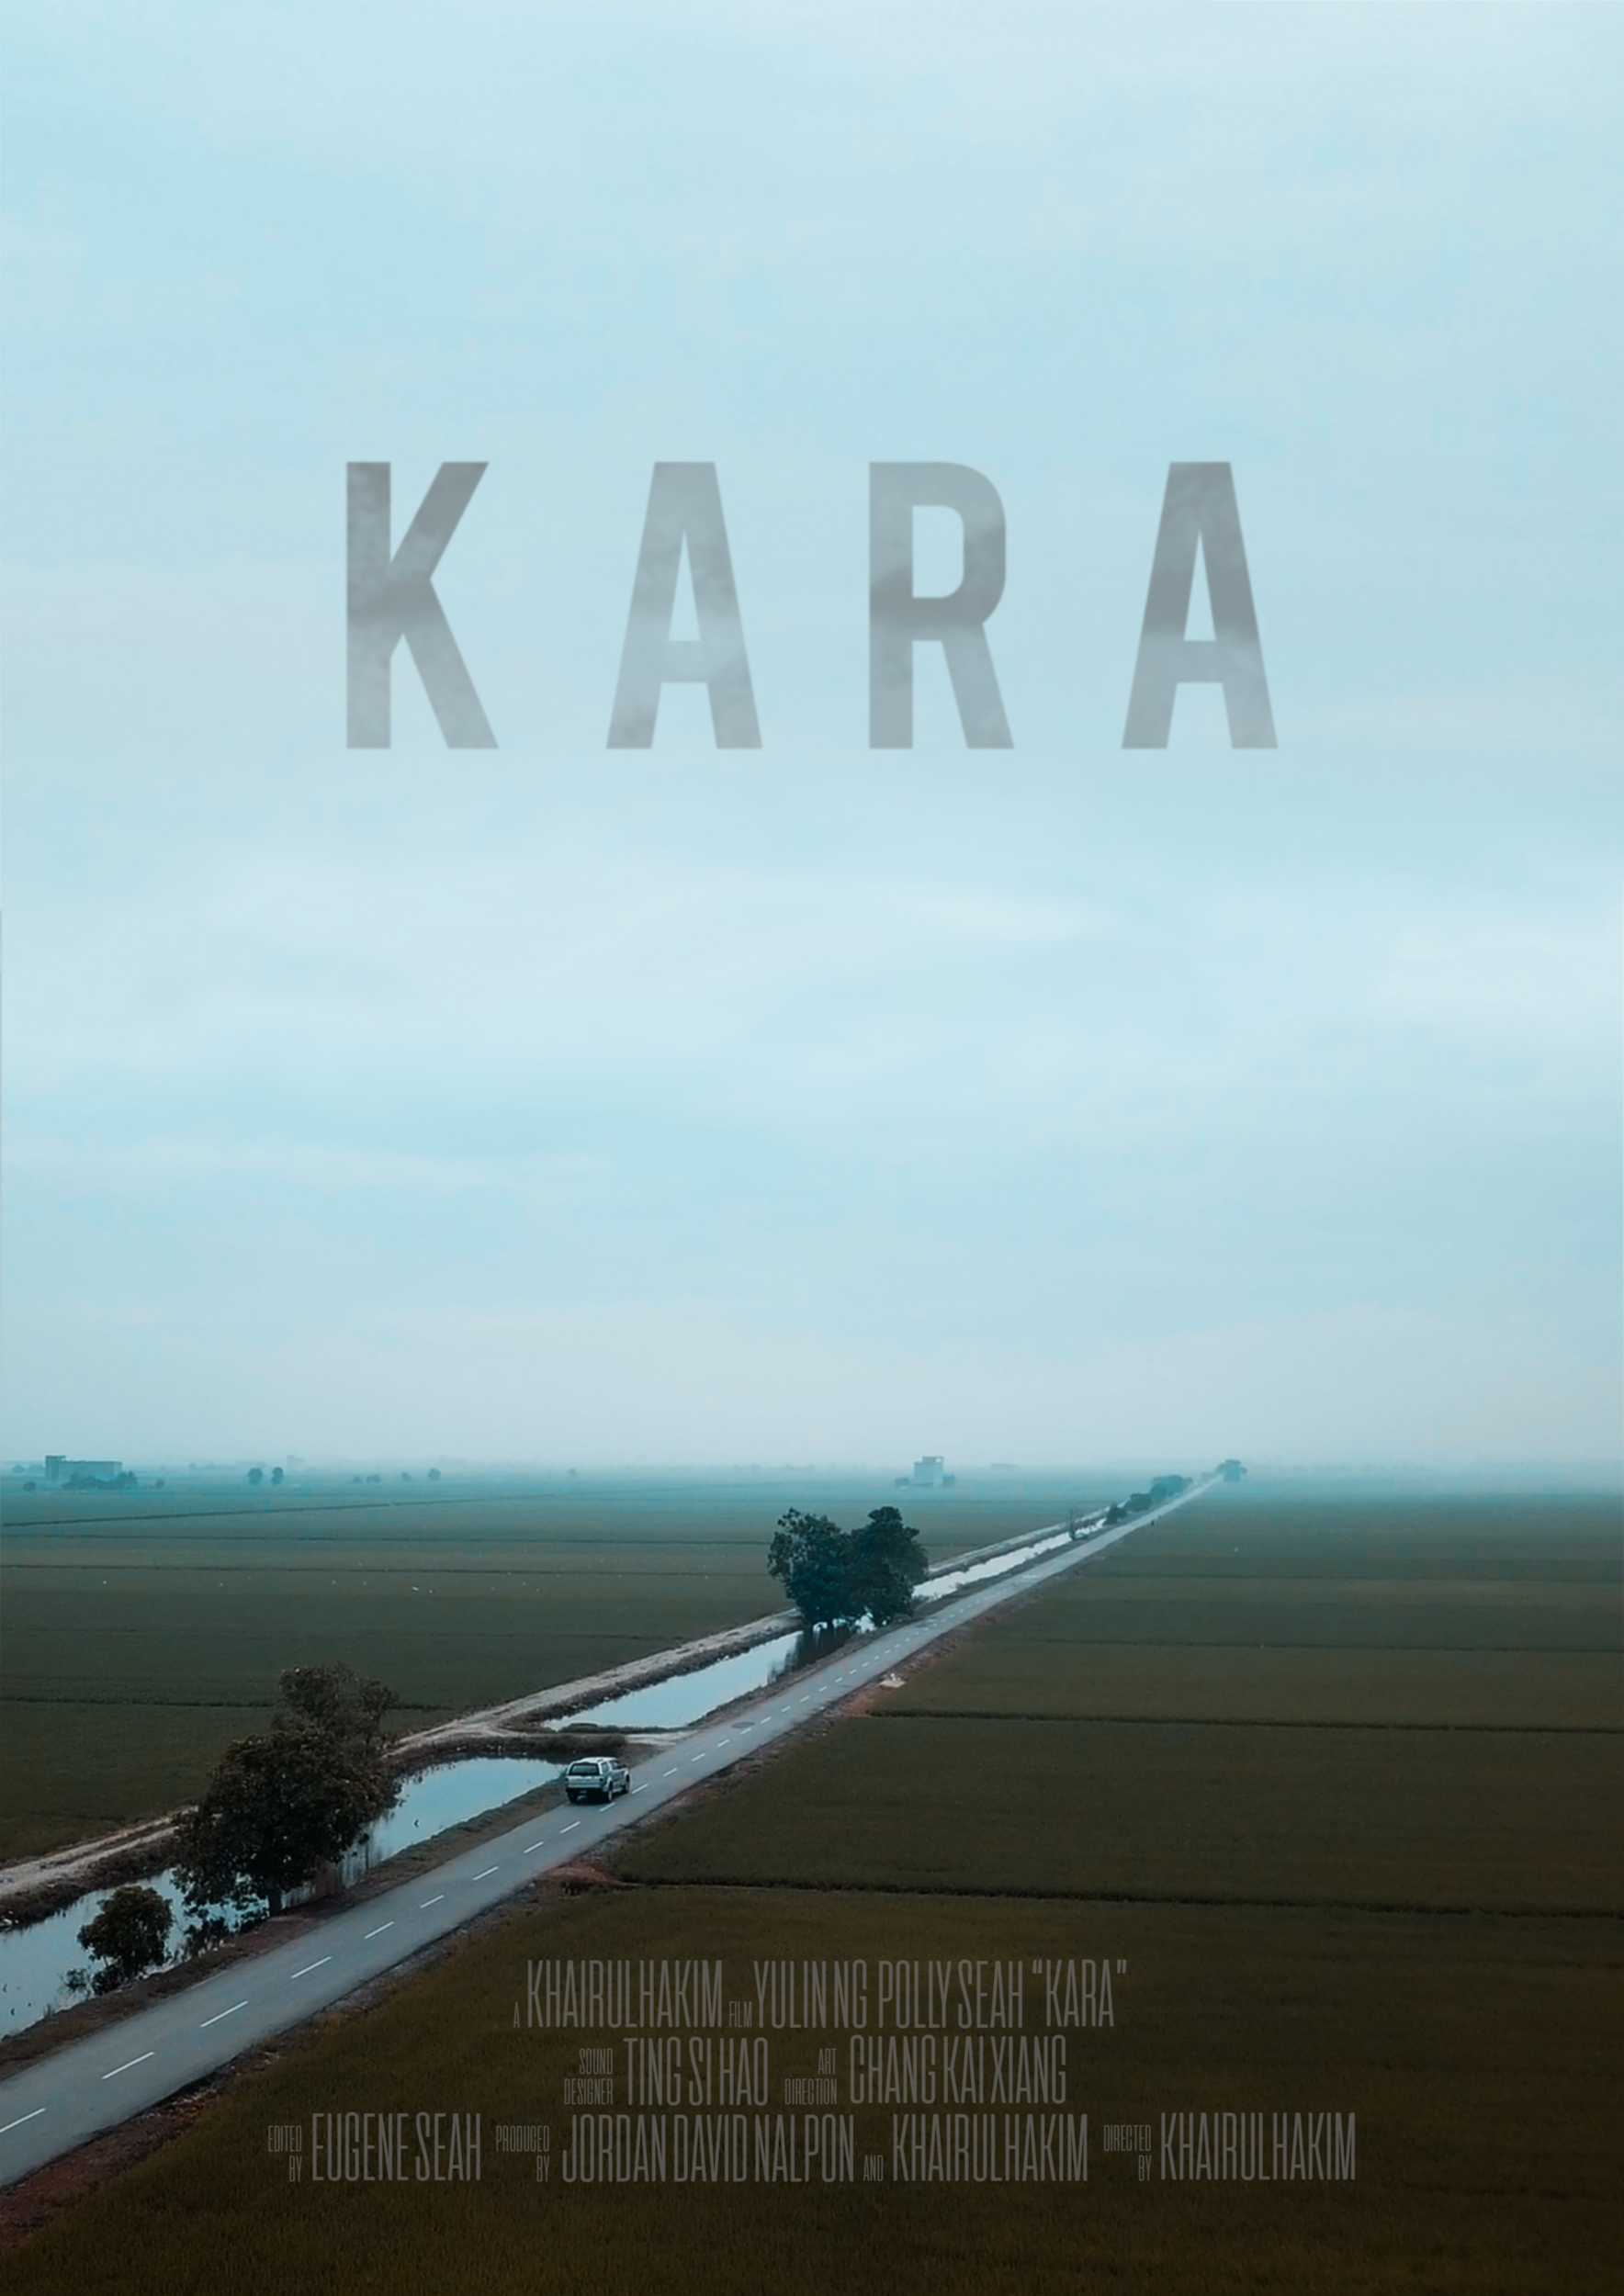 KARA synopsis :  Trying to move on from a troubled past, June attempts to escape her life with her virtual phone assistant, Kara. The device brings June through a literal journey of recovery, until she discovers that Kara's intentions are not what it seems.